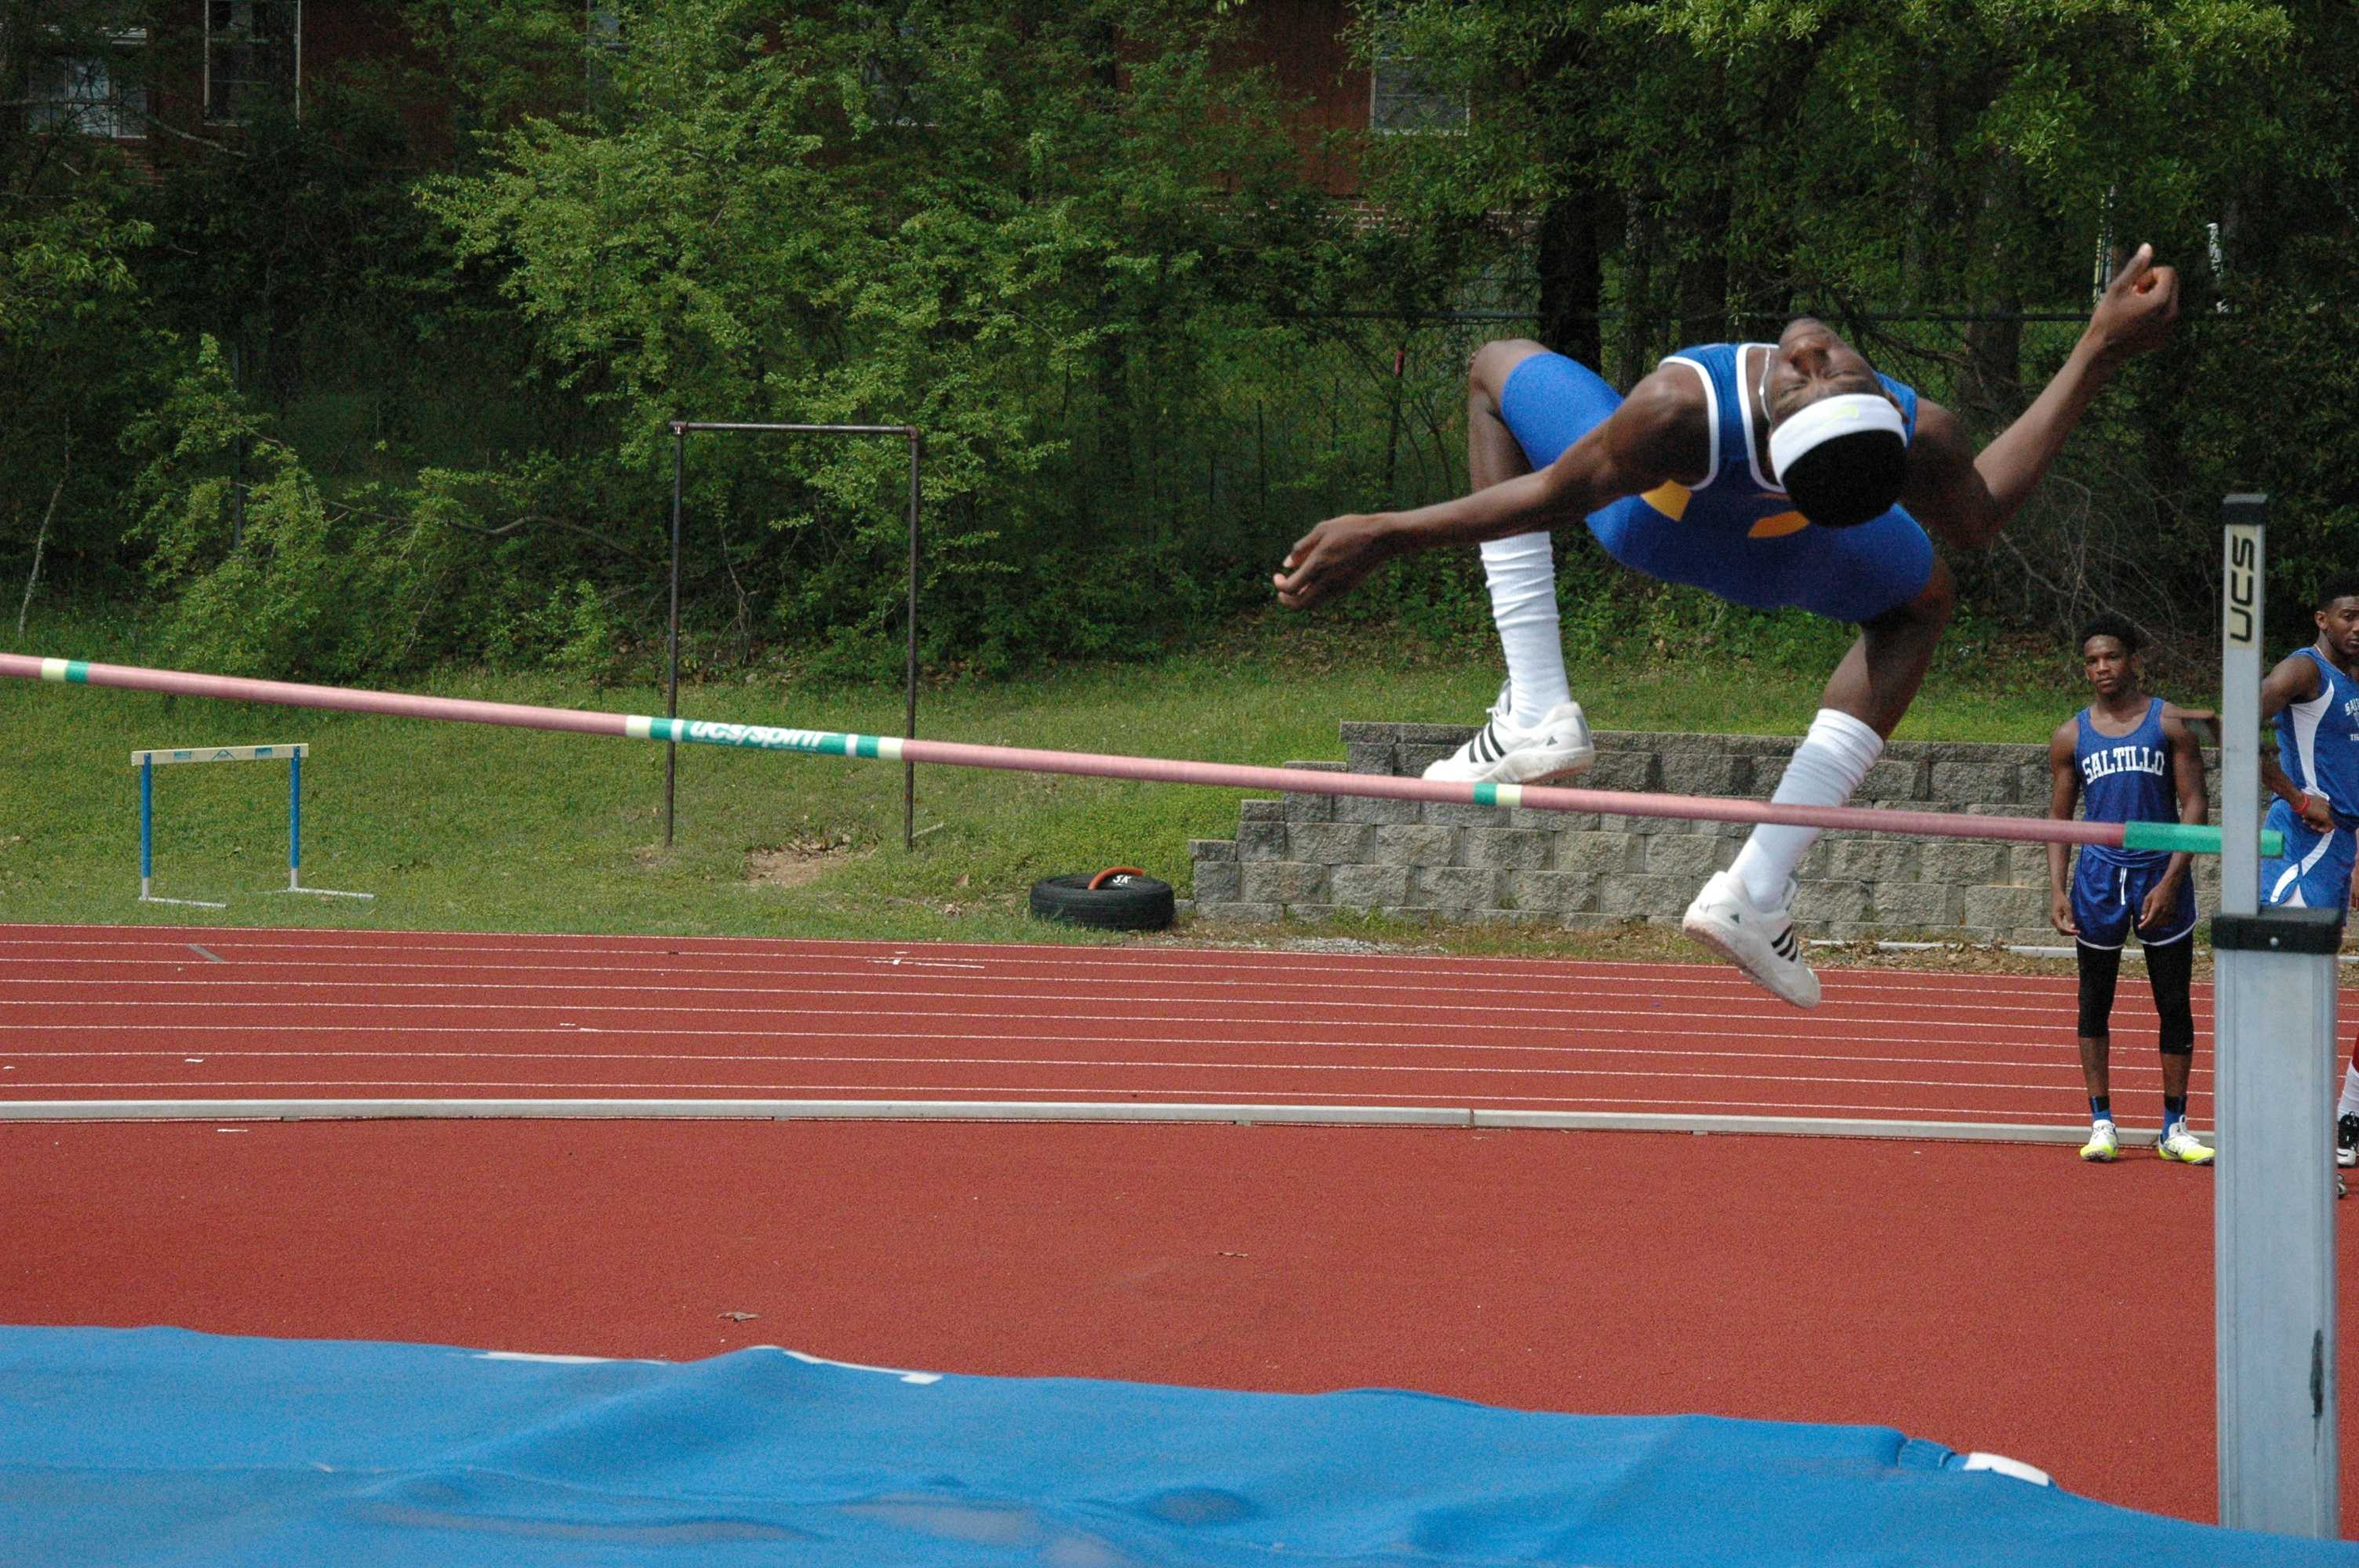 Shelby+McEwen+high+jumps.+McEwen+came+in+first+place+for+the+boys%27+high+jump.